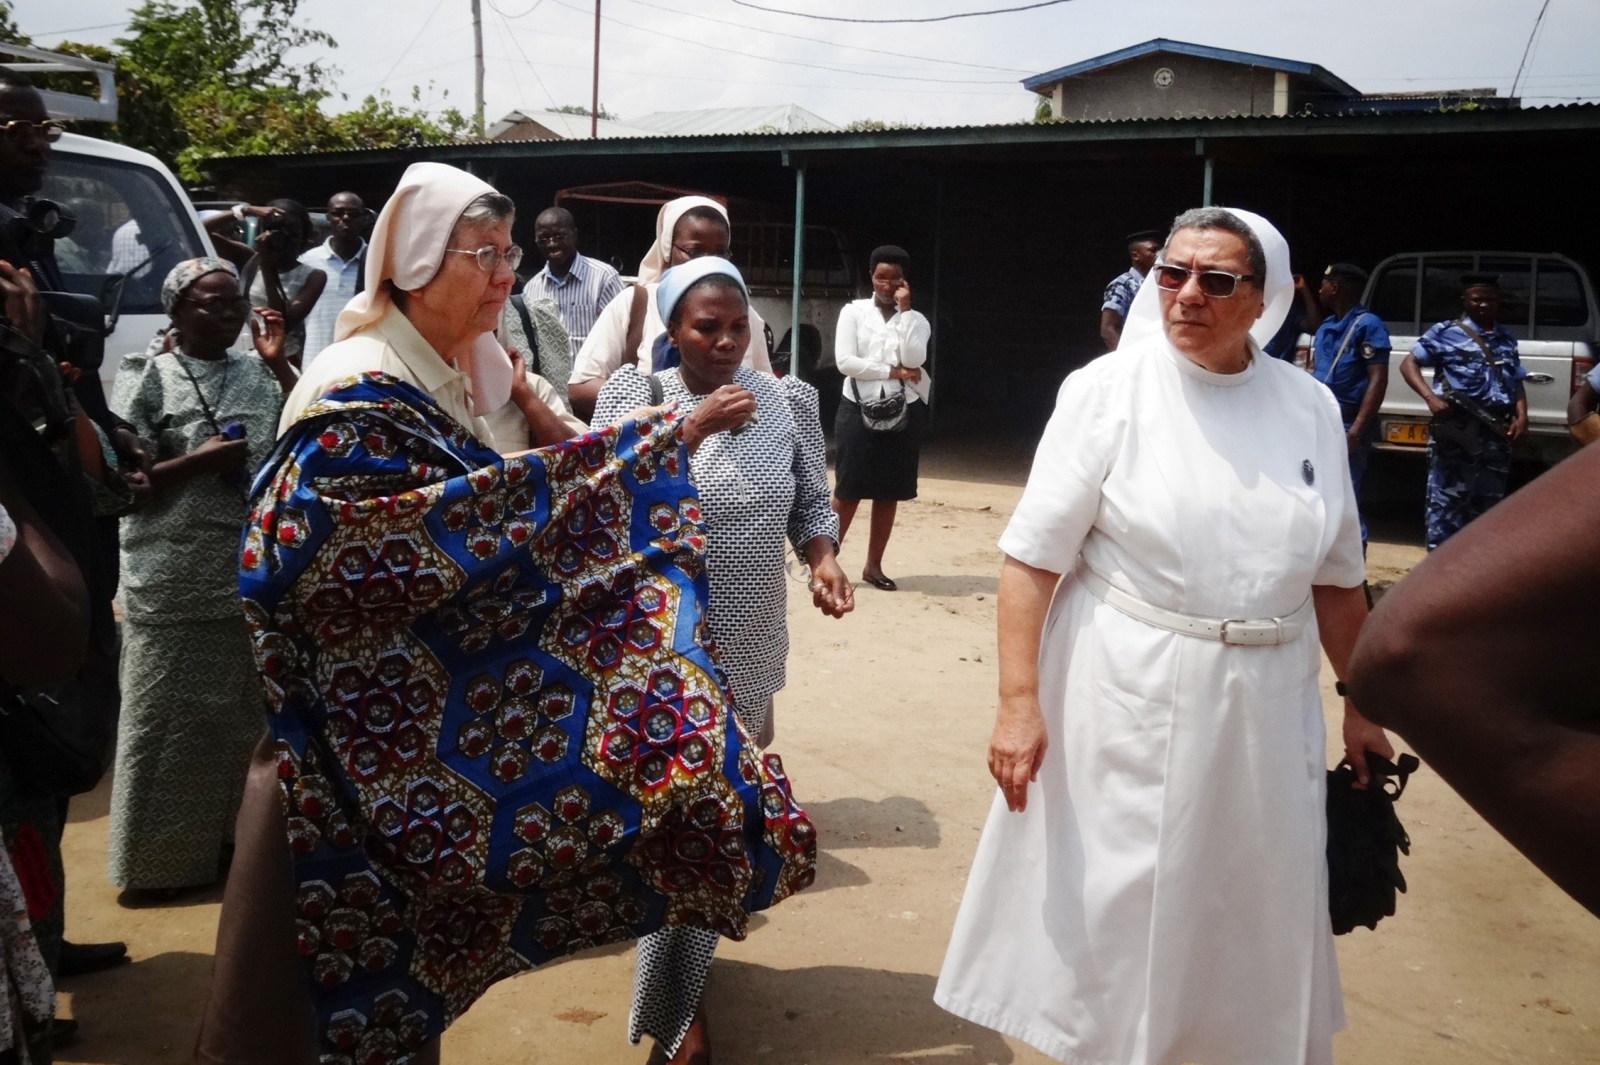 Italian Nuns Raped and Butchered In Burundi Convent